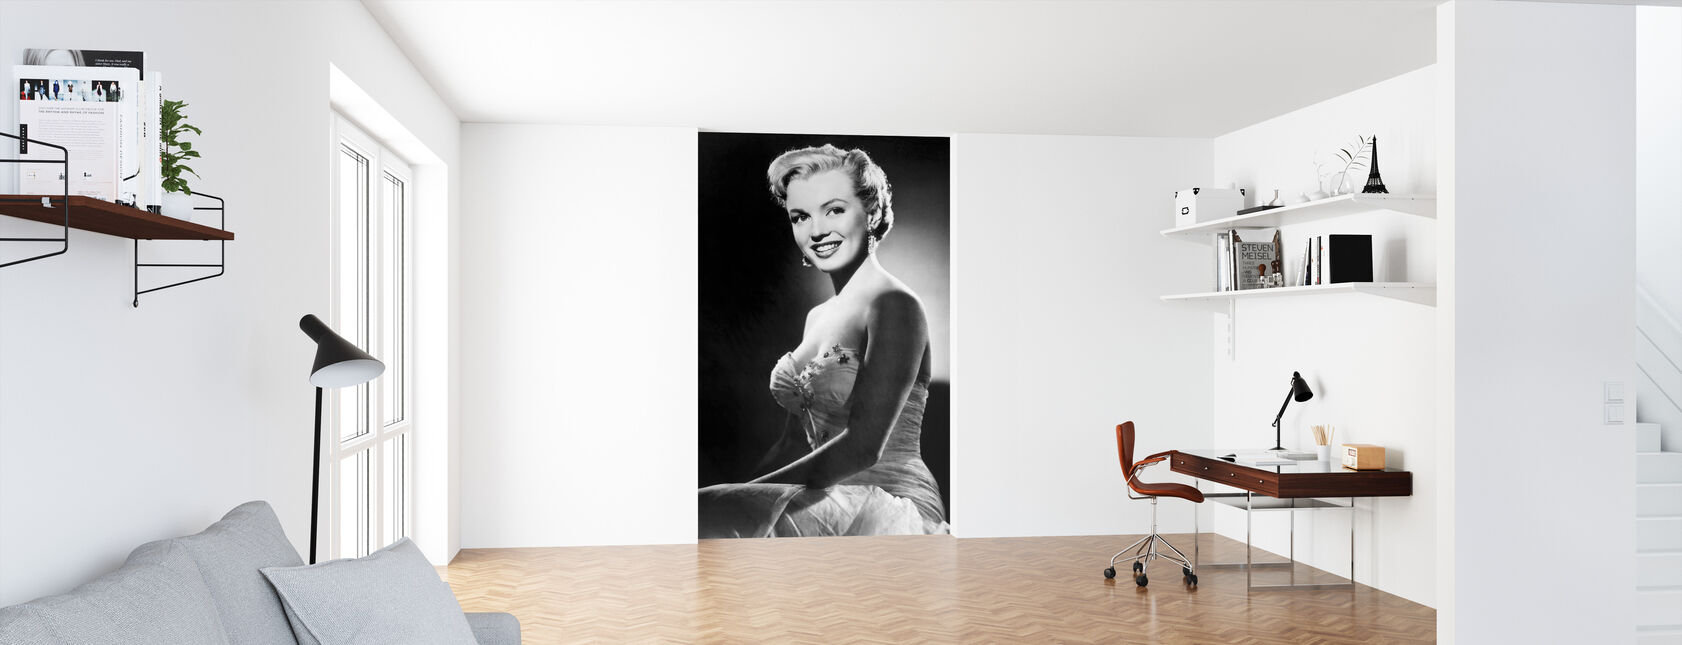 All about Eve - Wallpaper - Office